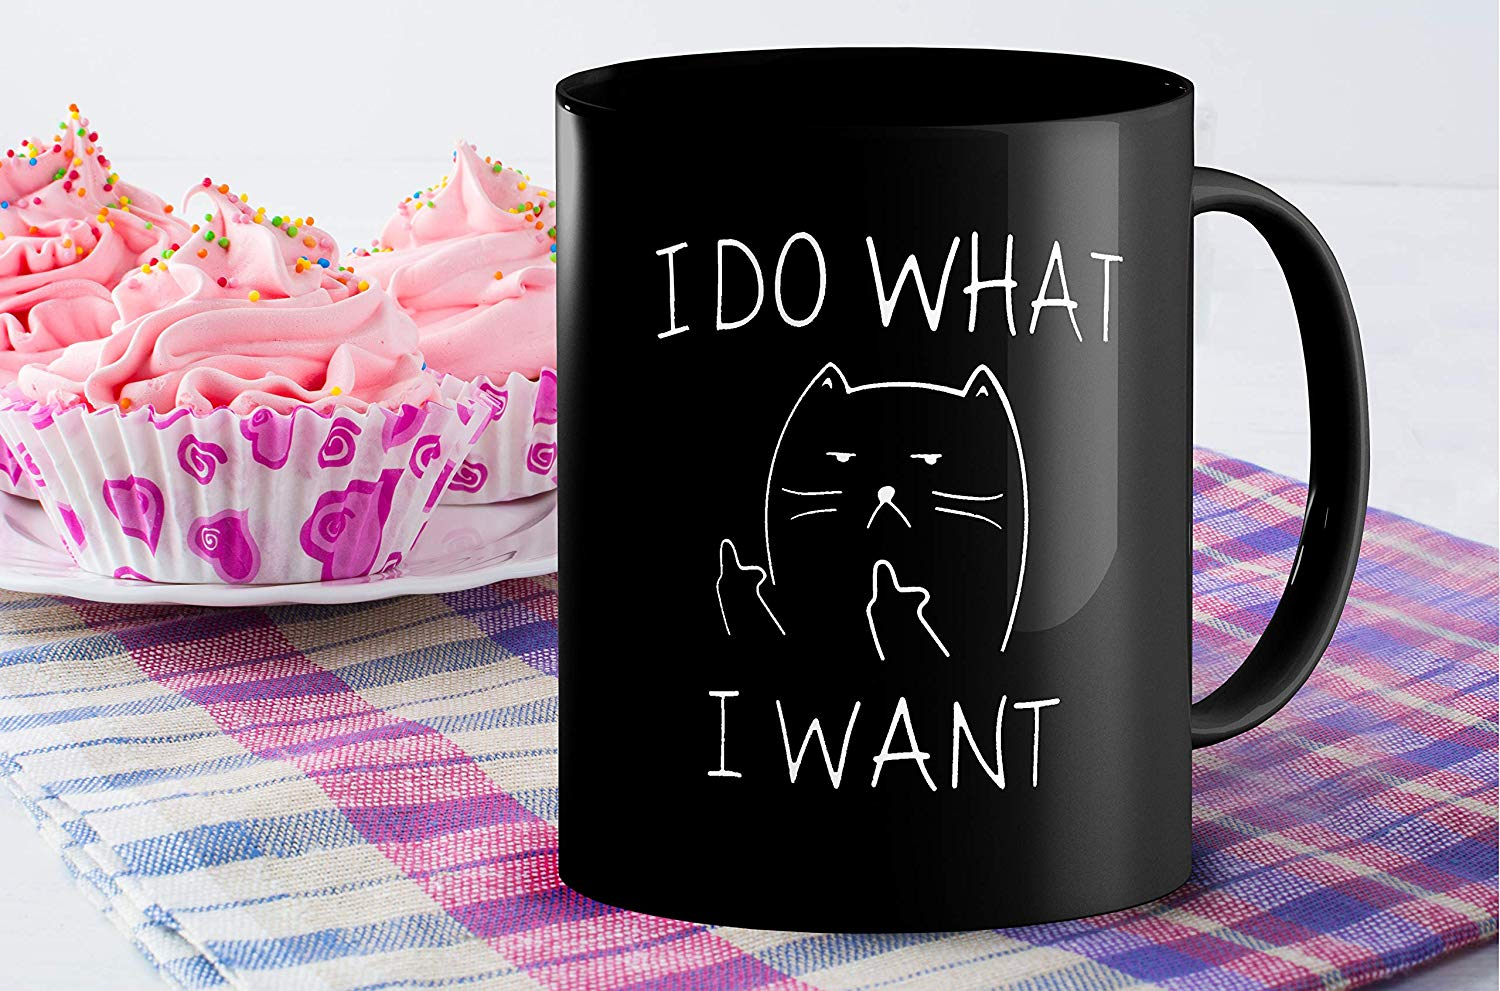 I Do What I Want Funny Coffee Mug Cat Middle Finger 11 Oz Birthday Gift For Men Women Him Or Her B079FSTVY3 6